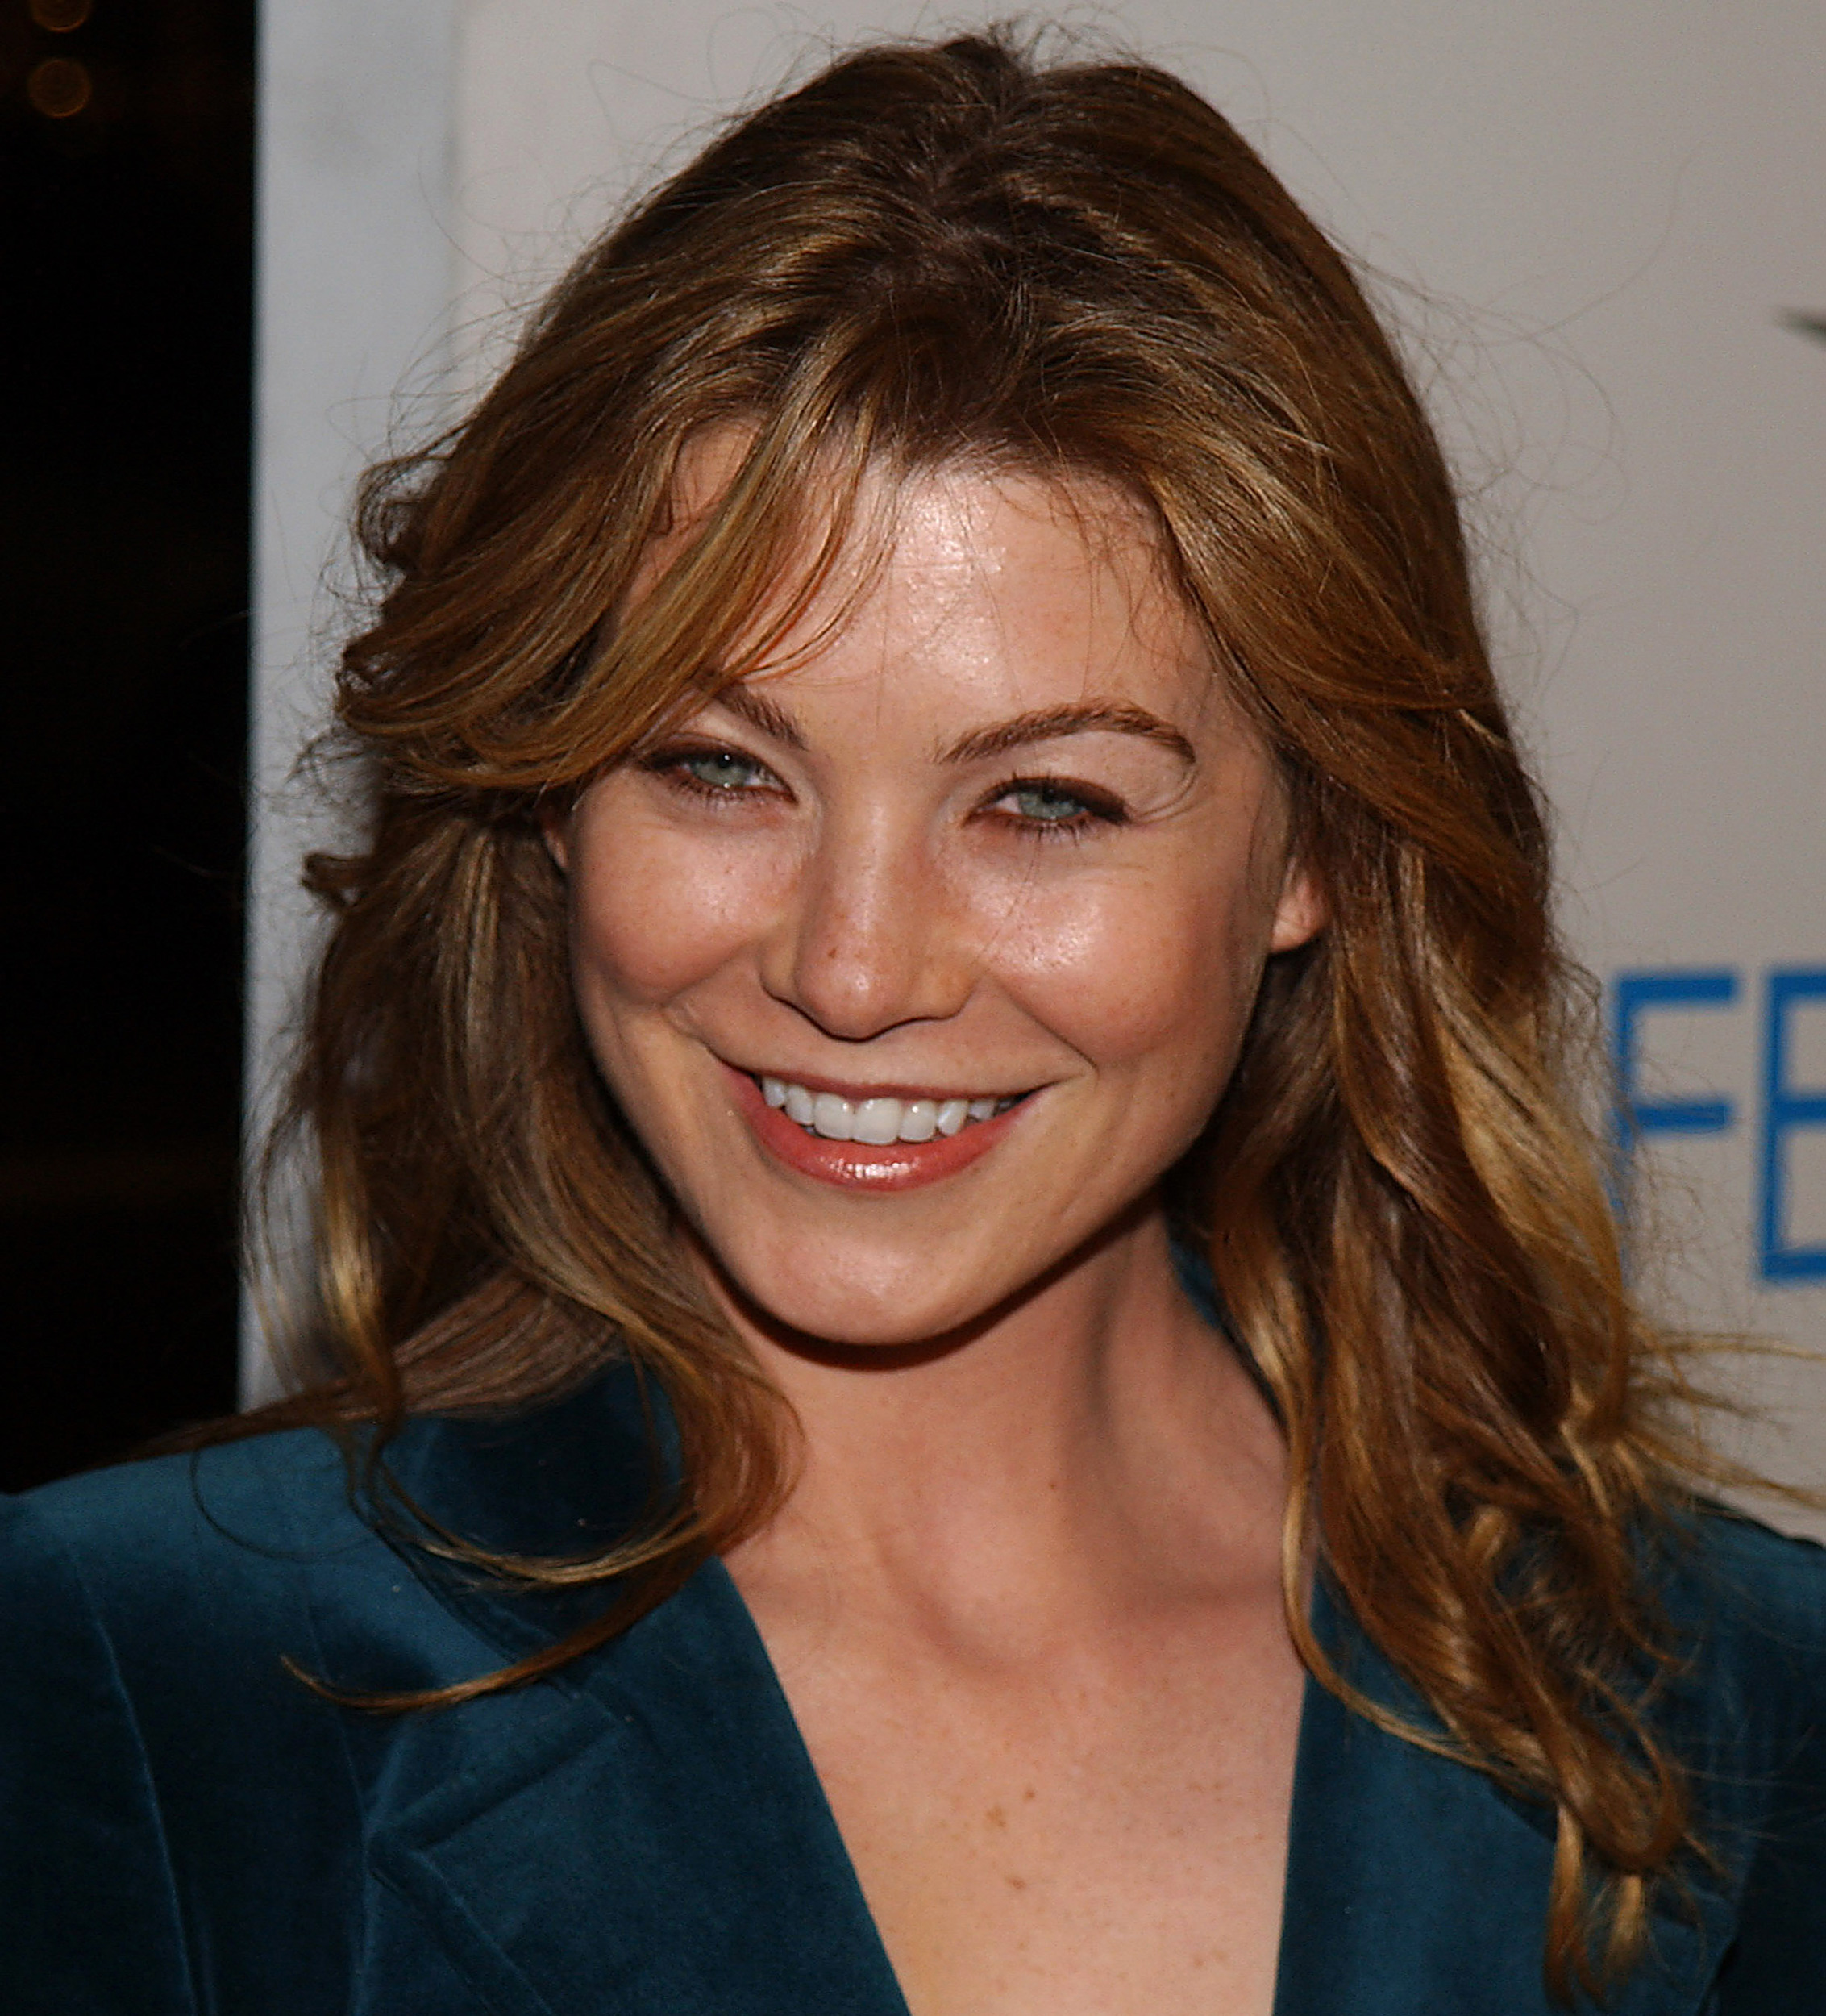 Ellen Pompeo tells Kathie Lee Gifford and Hoda Kotb to 'lay off the booze' over Patrick Dempsey tweet